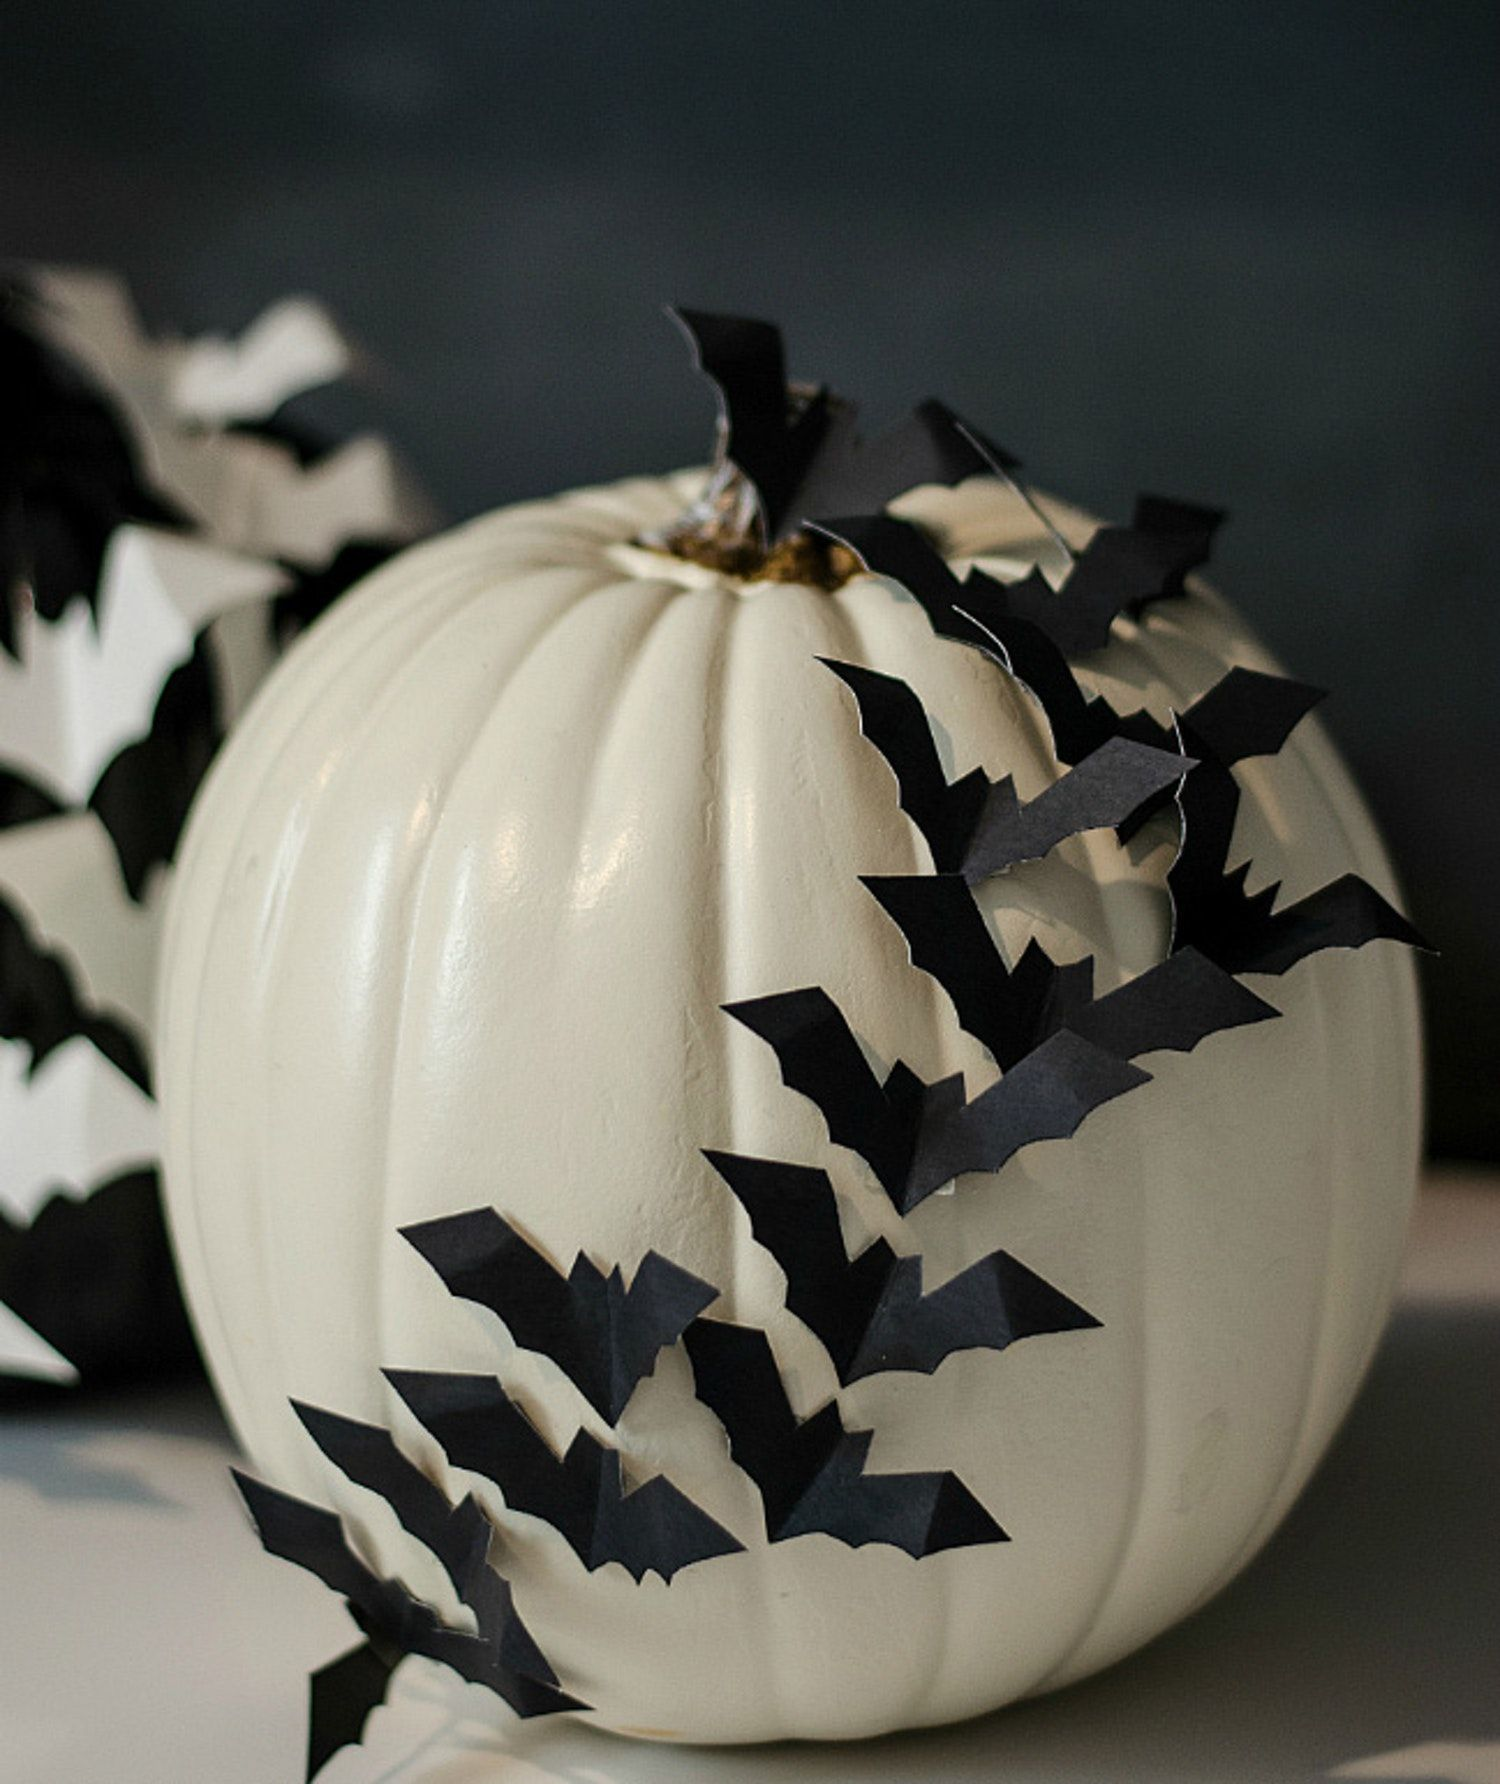 Lucky 13 Halloween Decorations You Can Make in 30 Minutes or Less - Inexpensive Halloween Decorations